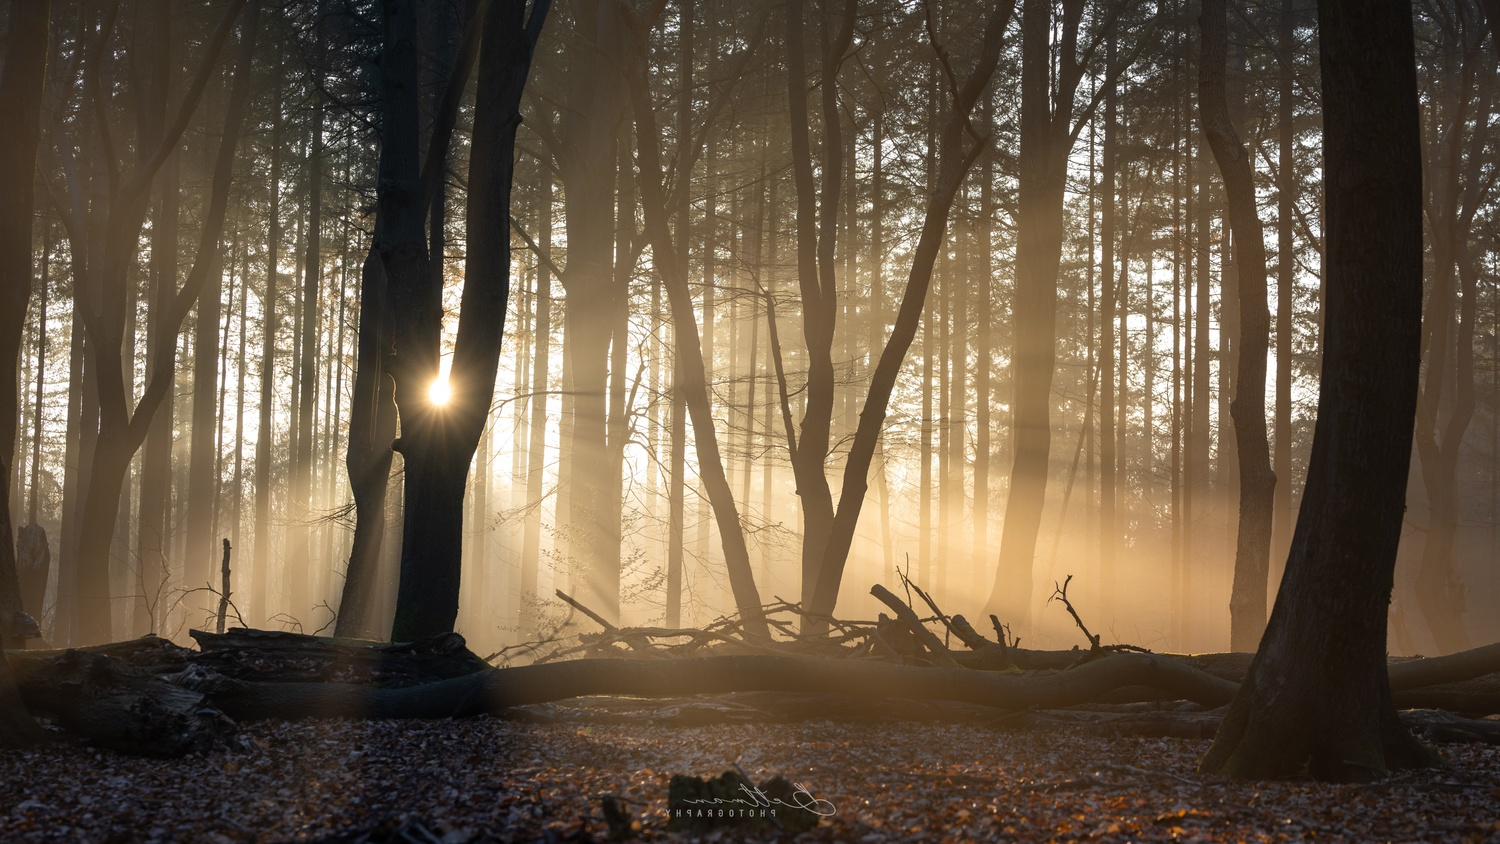 Behind the trees by Matthijs Bettman